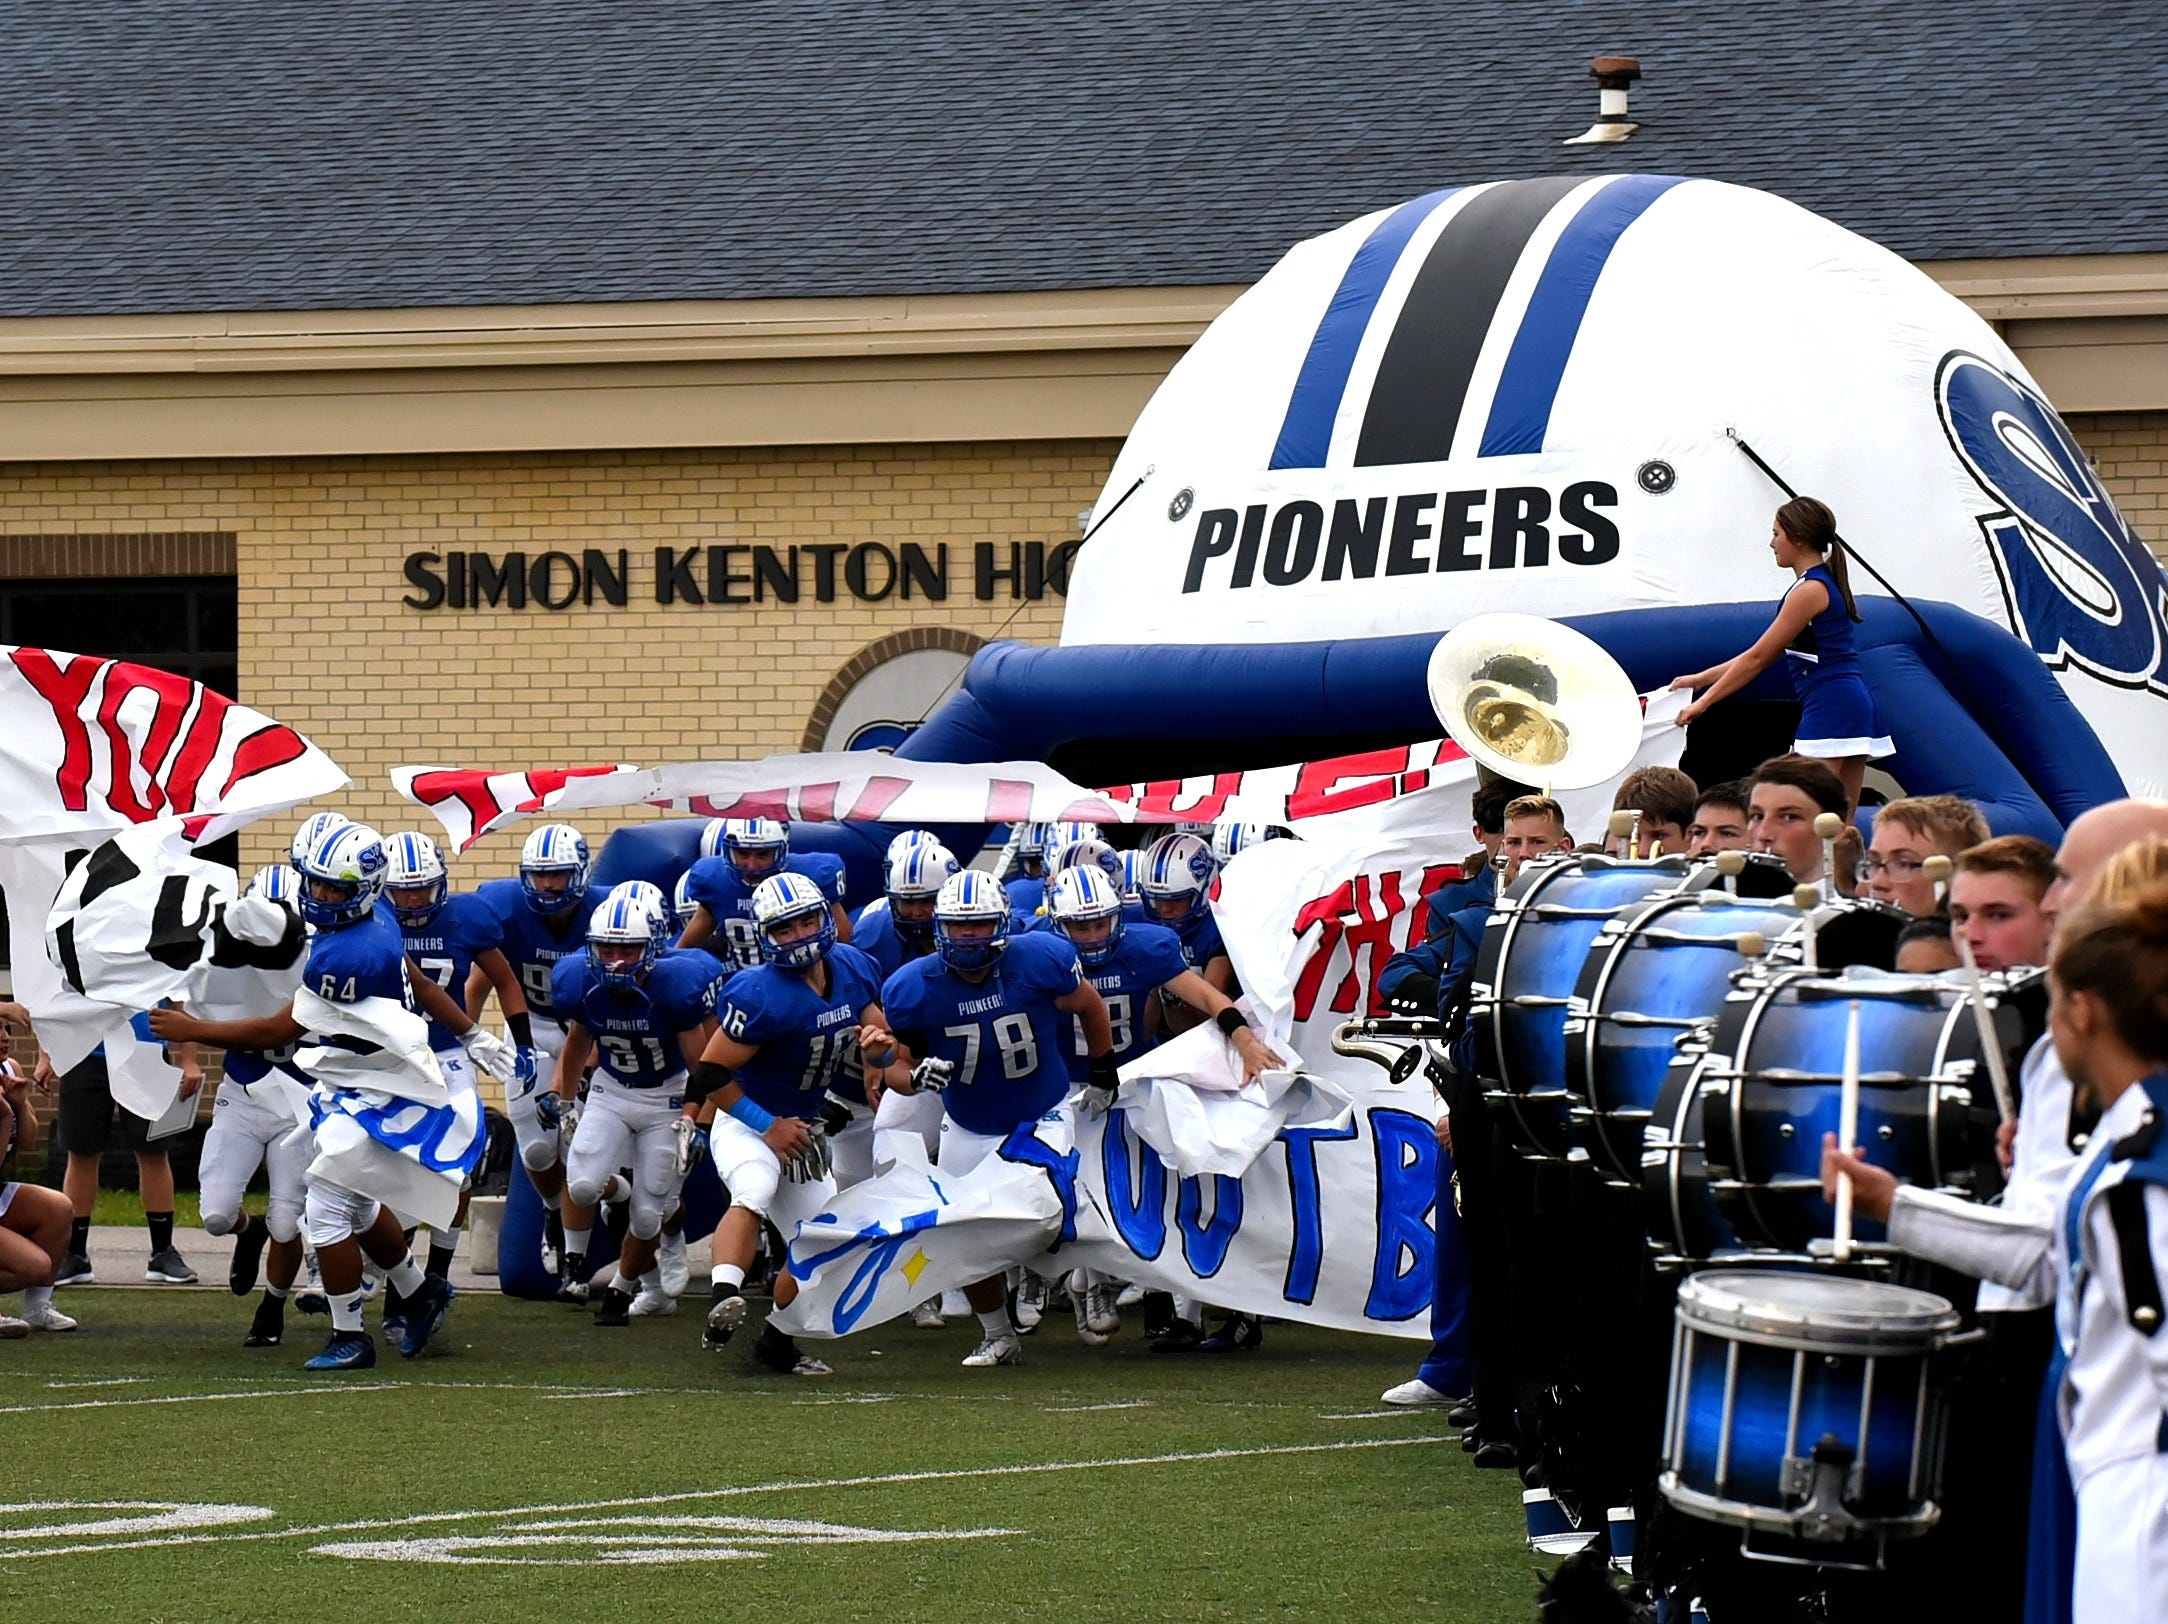 The Pioneers of Simon Kenton break the banner and take the field for their home game against Conner, August 31, 2018.